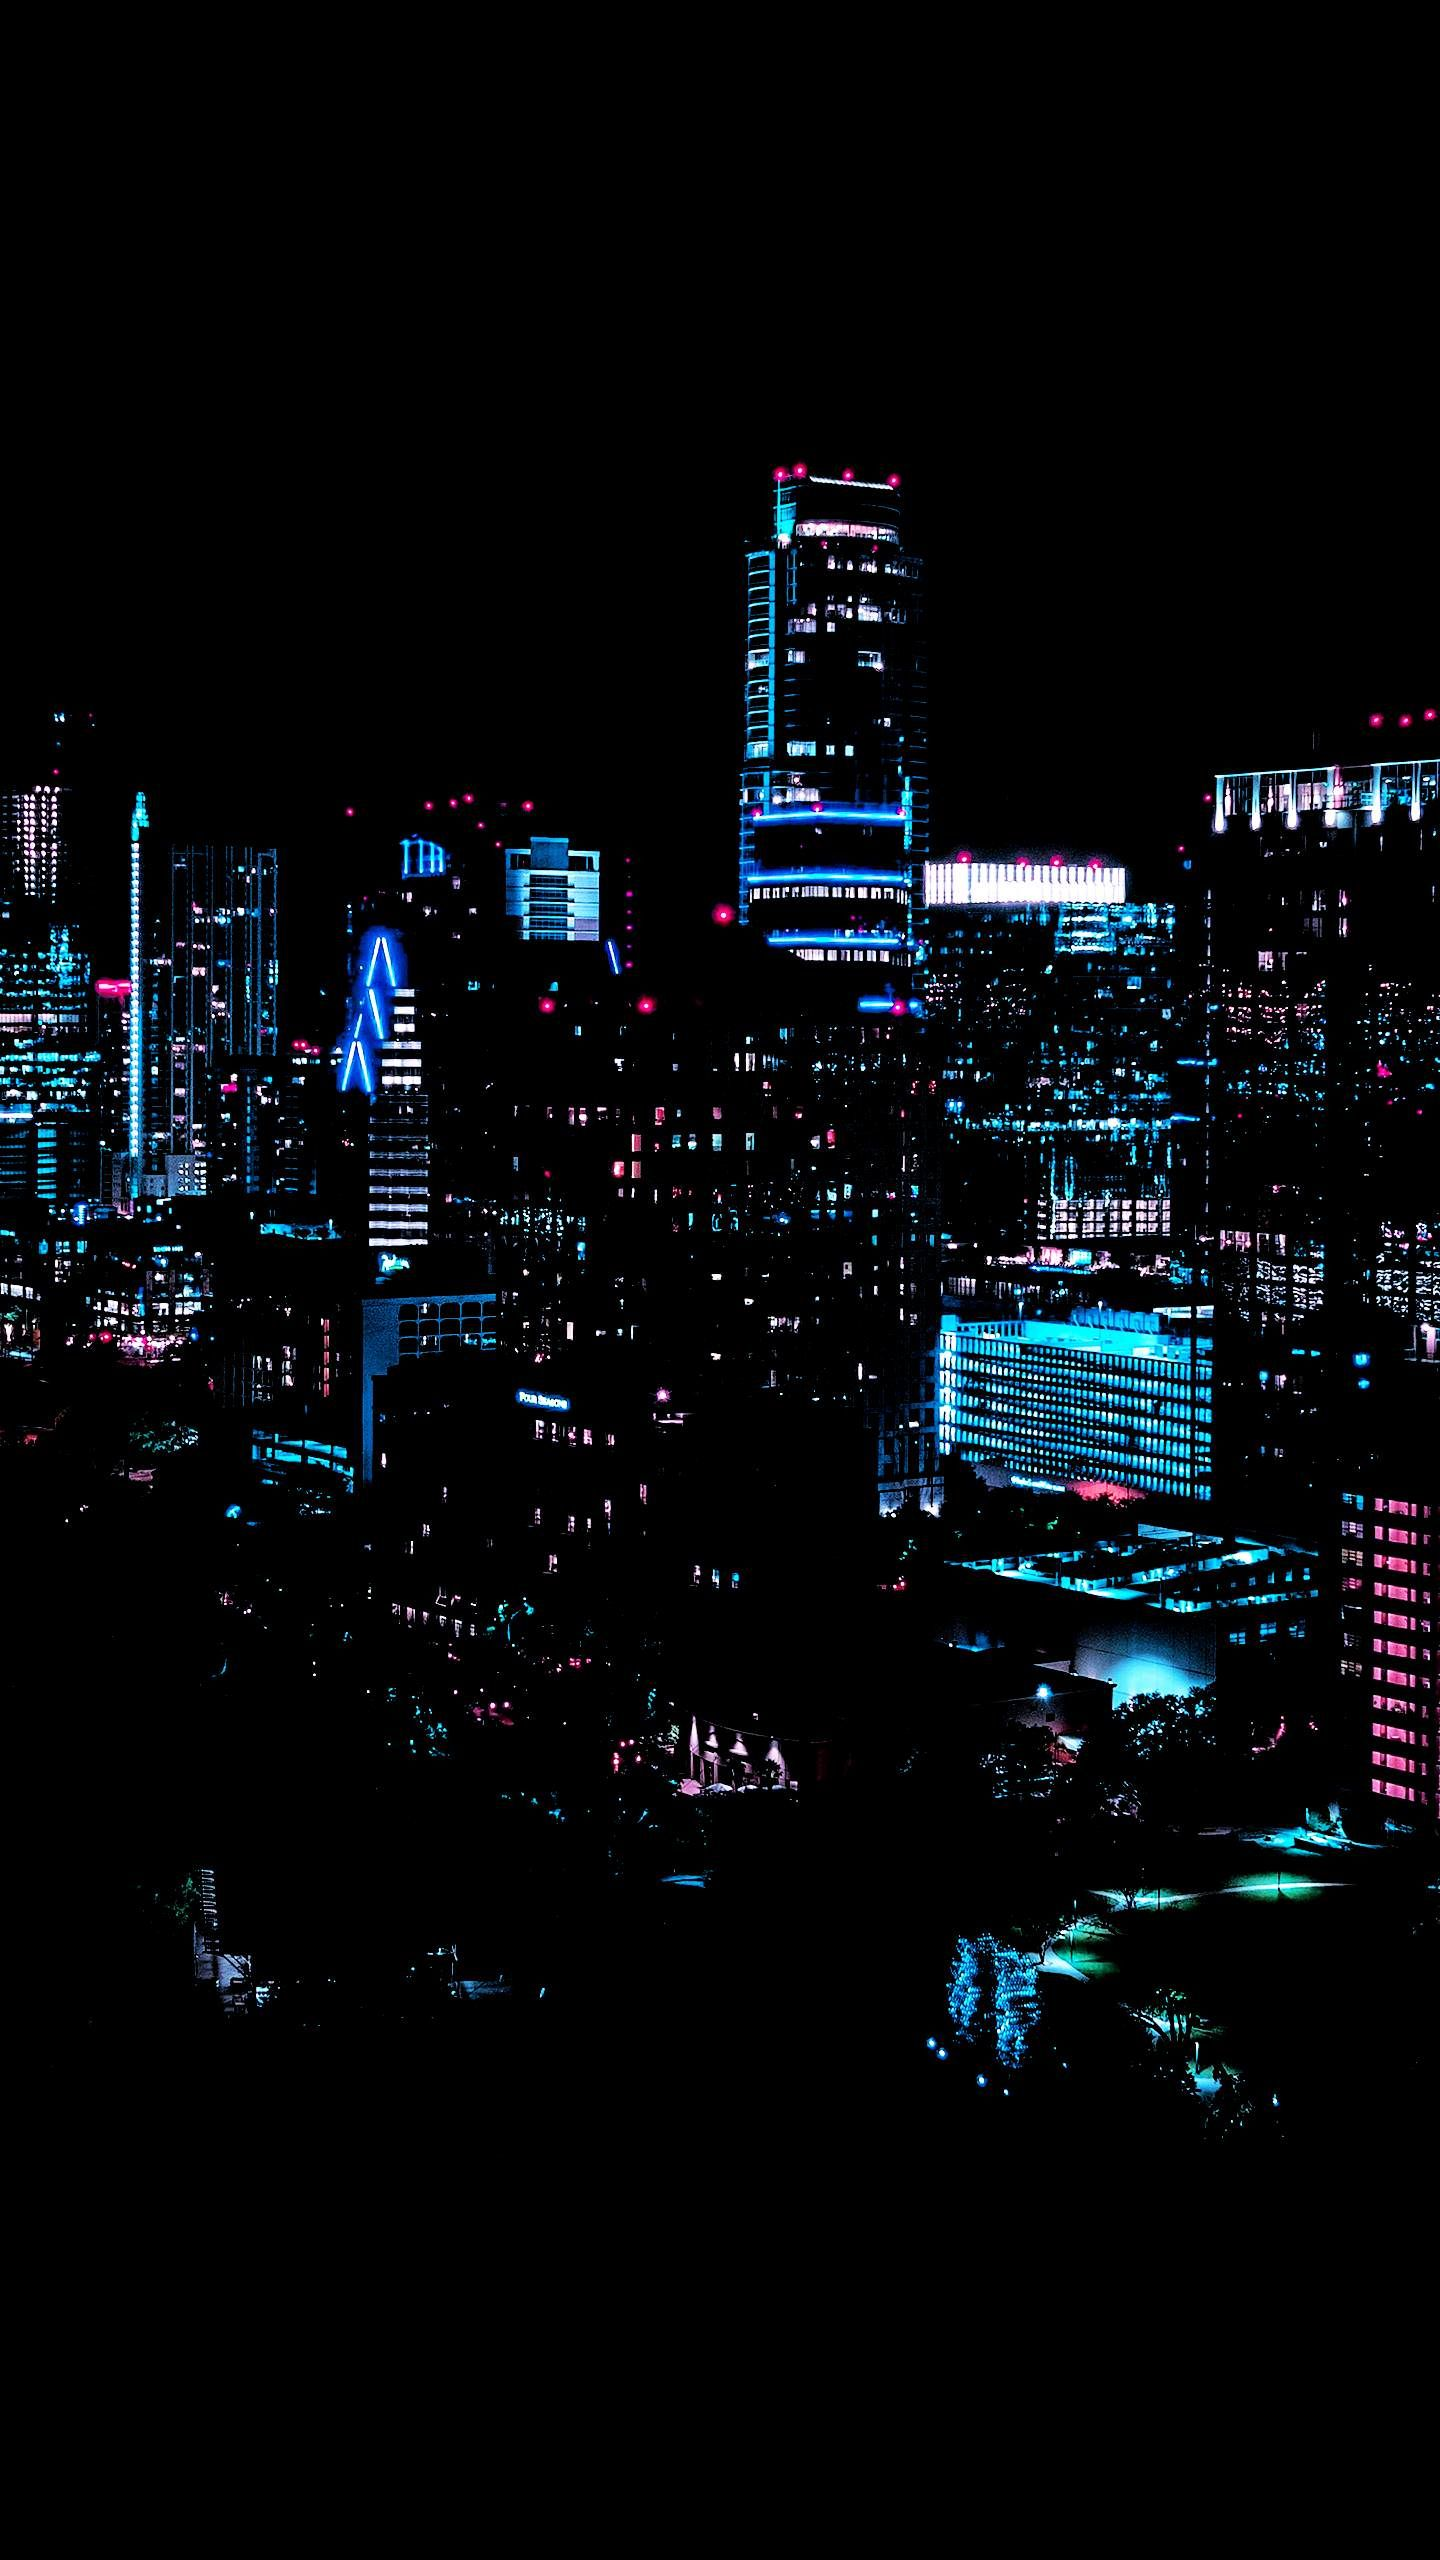 Neon City City Lights Wallpaper Cityscape Wallpaper Dark